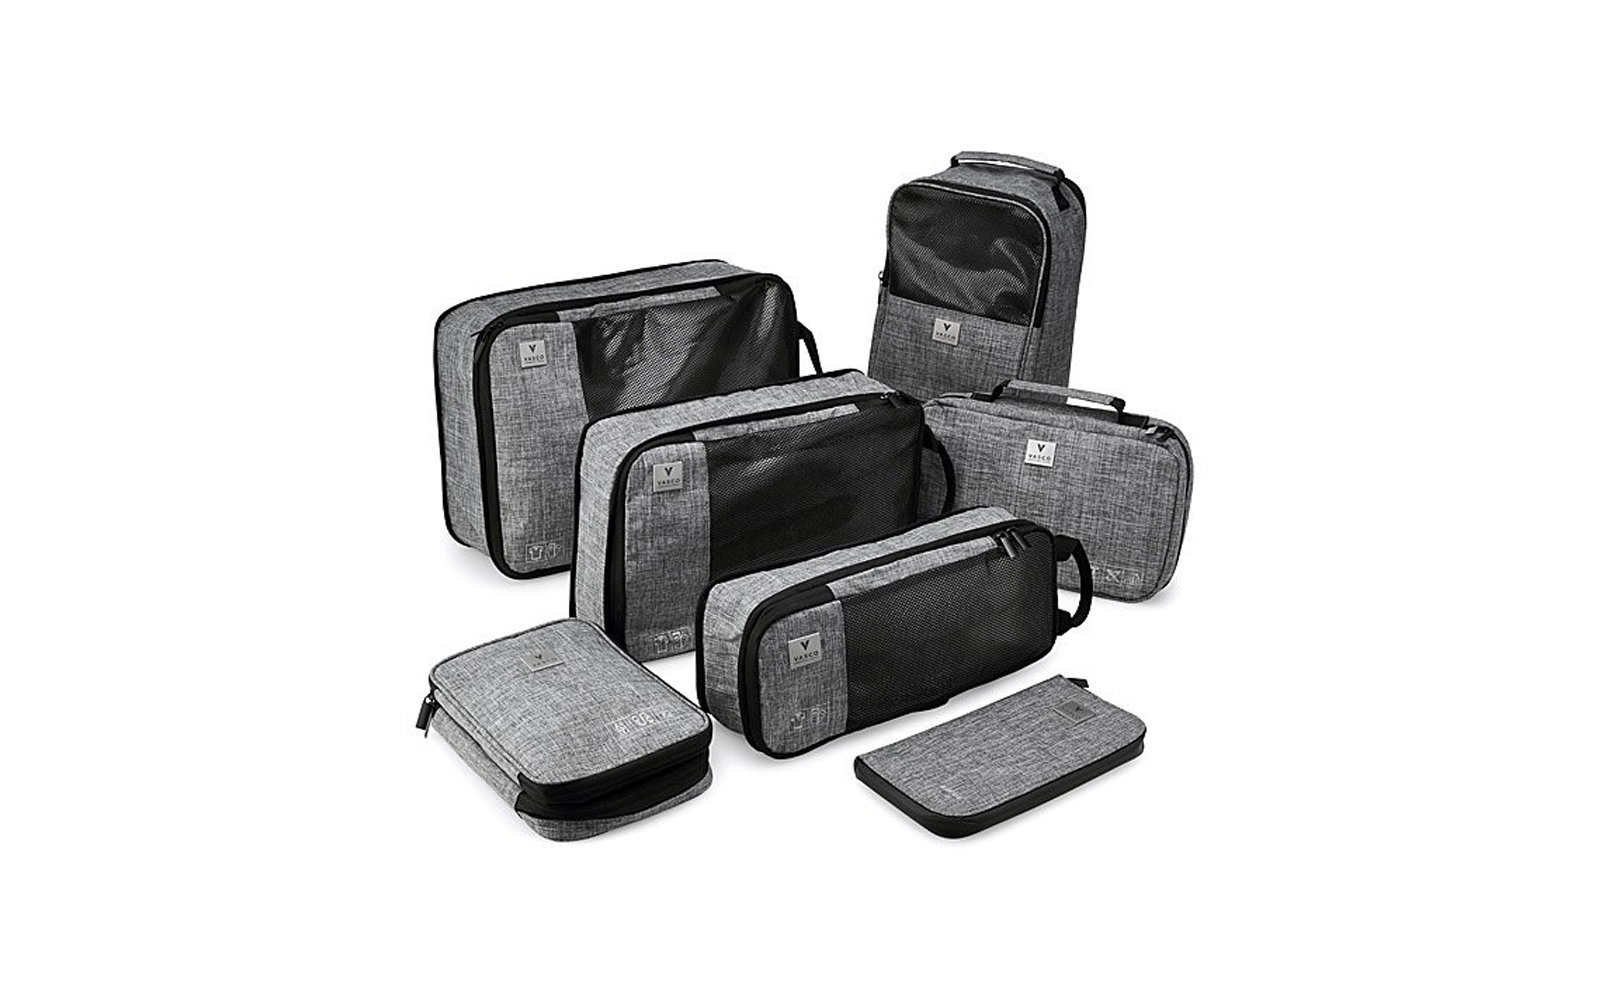 UncommonGoods, Smart Pack Travel Set, Best Gifts for Business Travelers